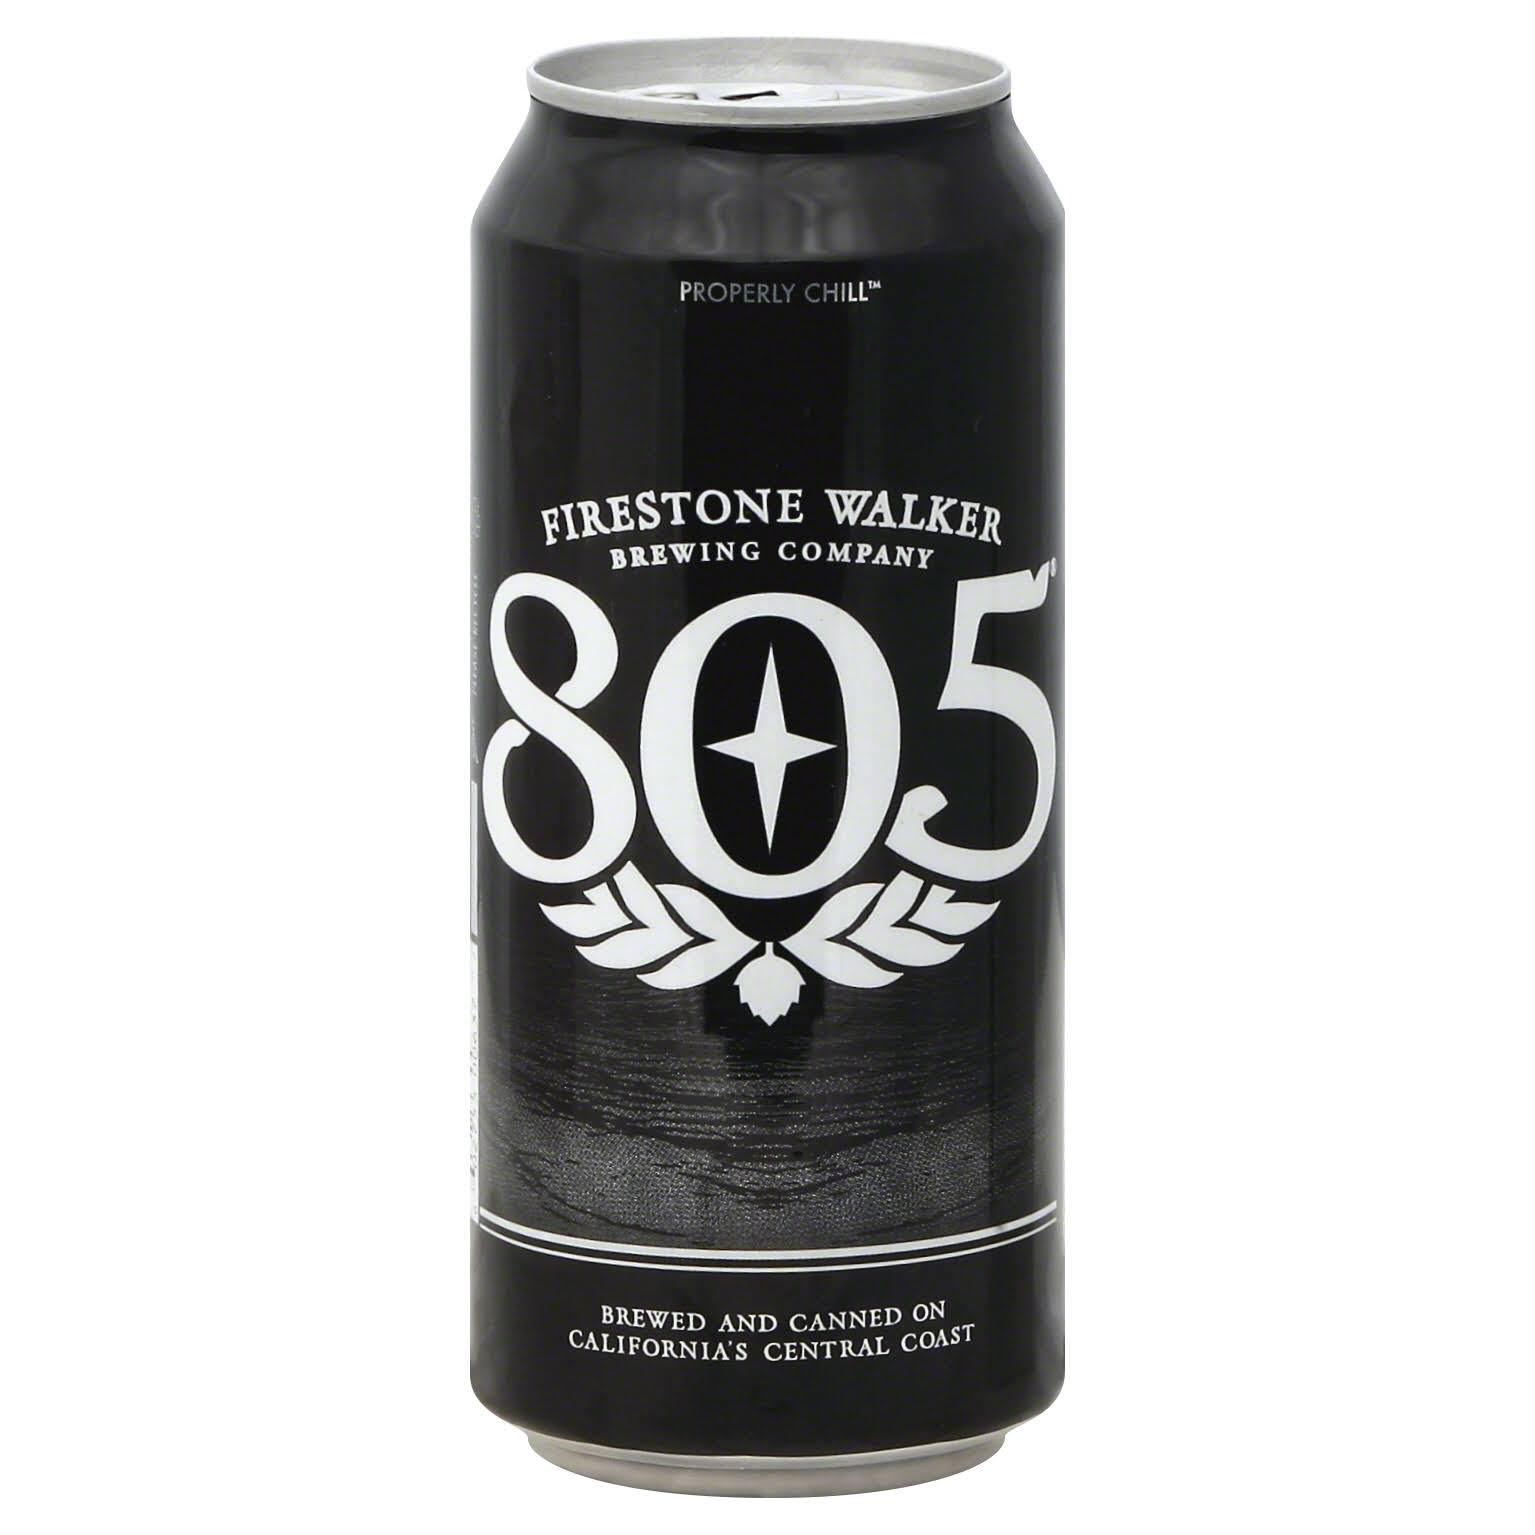 Firestone Walker Ale, 805 - 16 fl oz